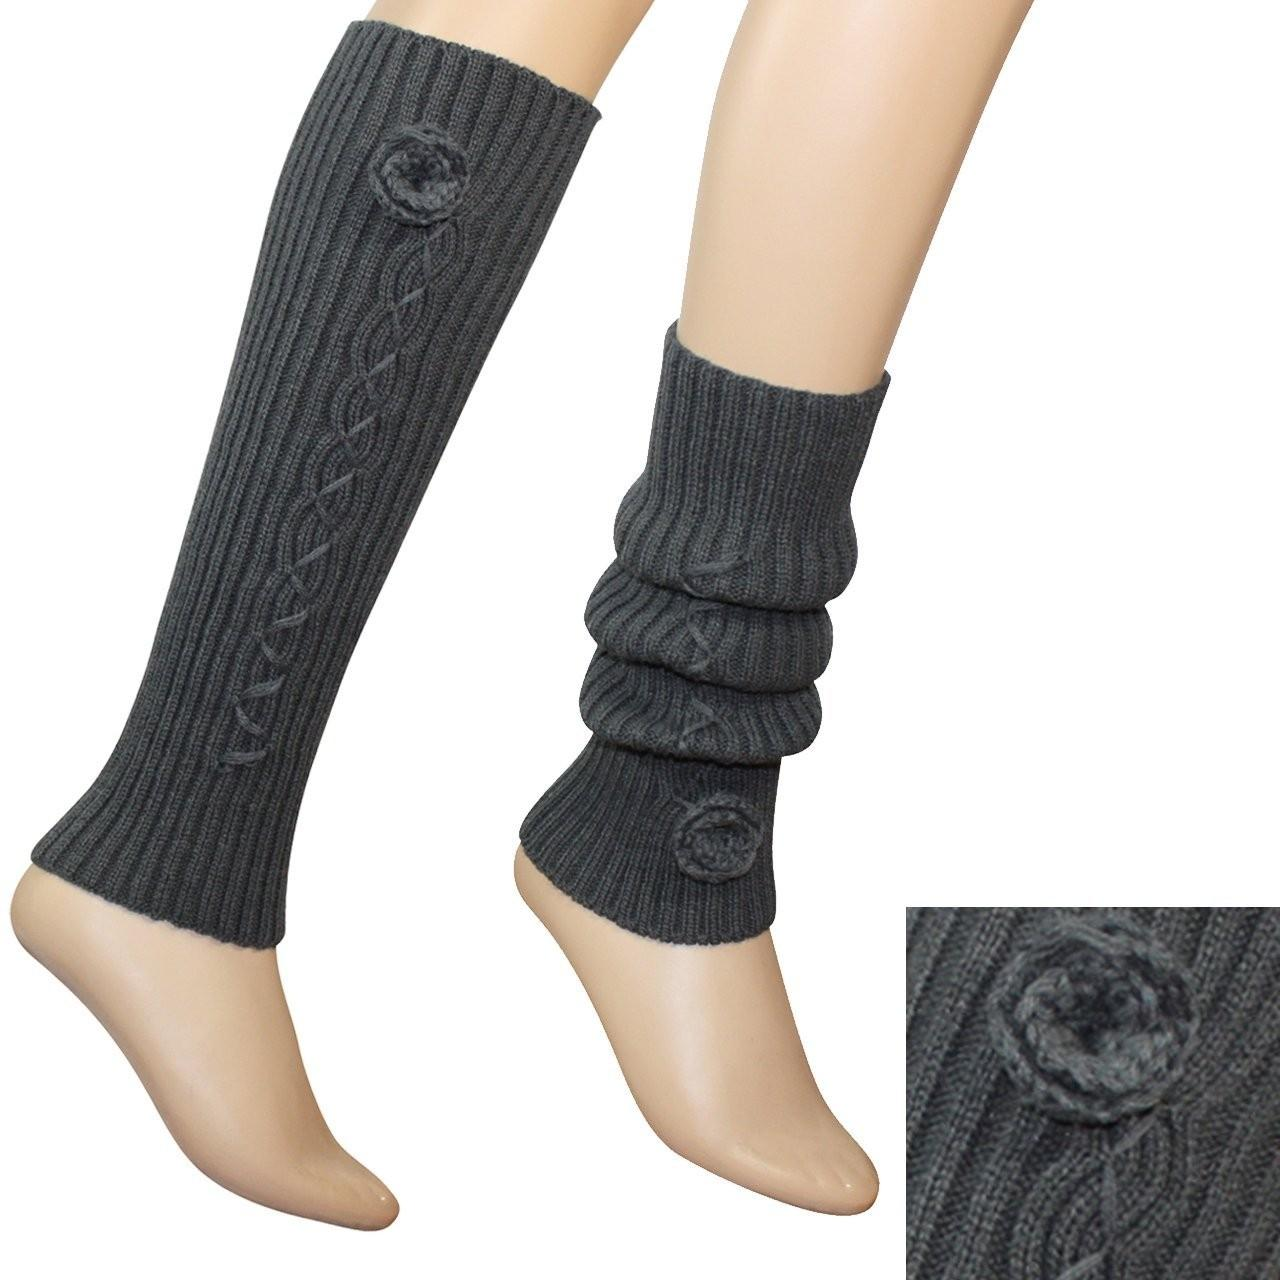 Quality 3.5 / 15.75 Inches White / Gray / Black Acrylic Knitted Leg Warmer Pattern For Women for sale